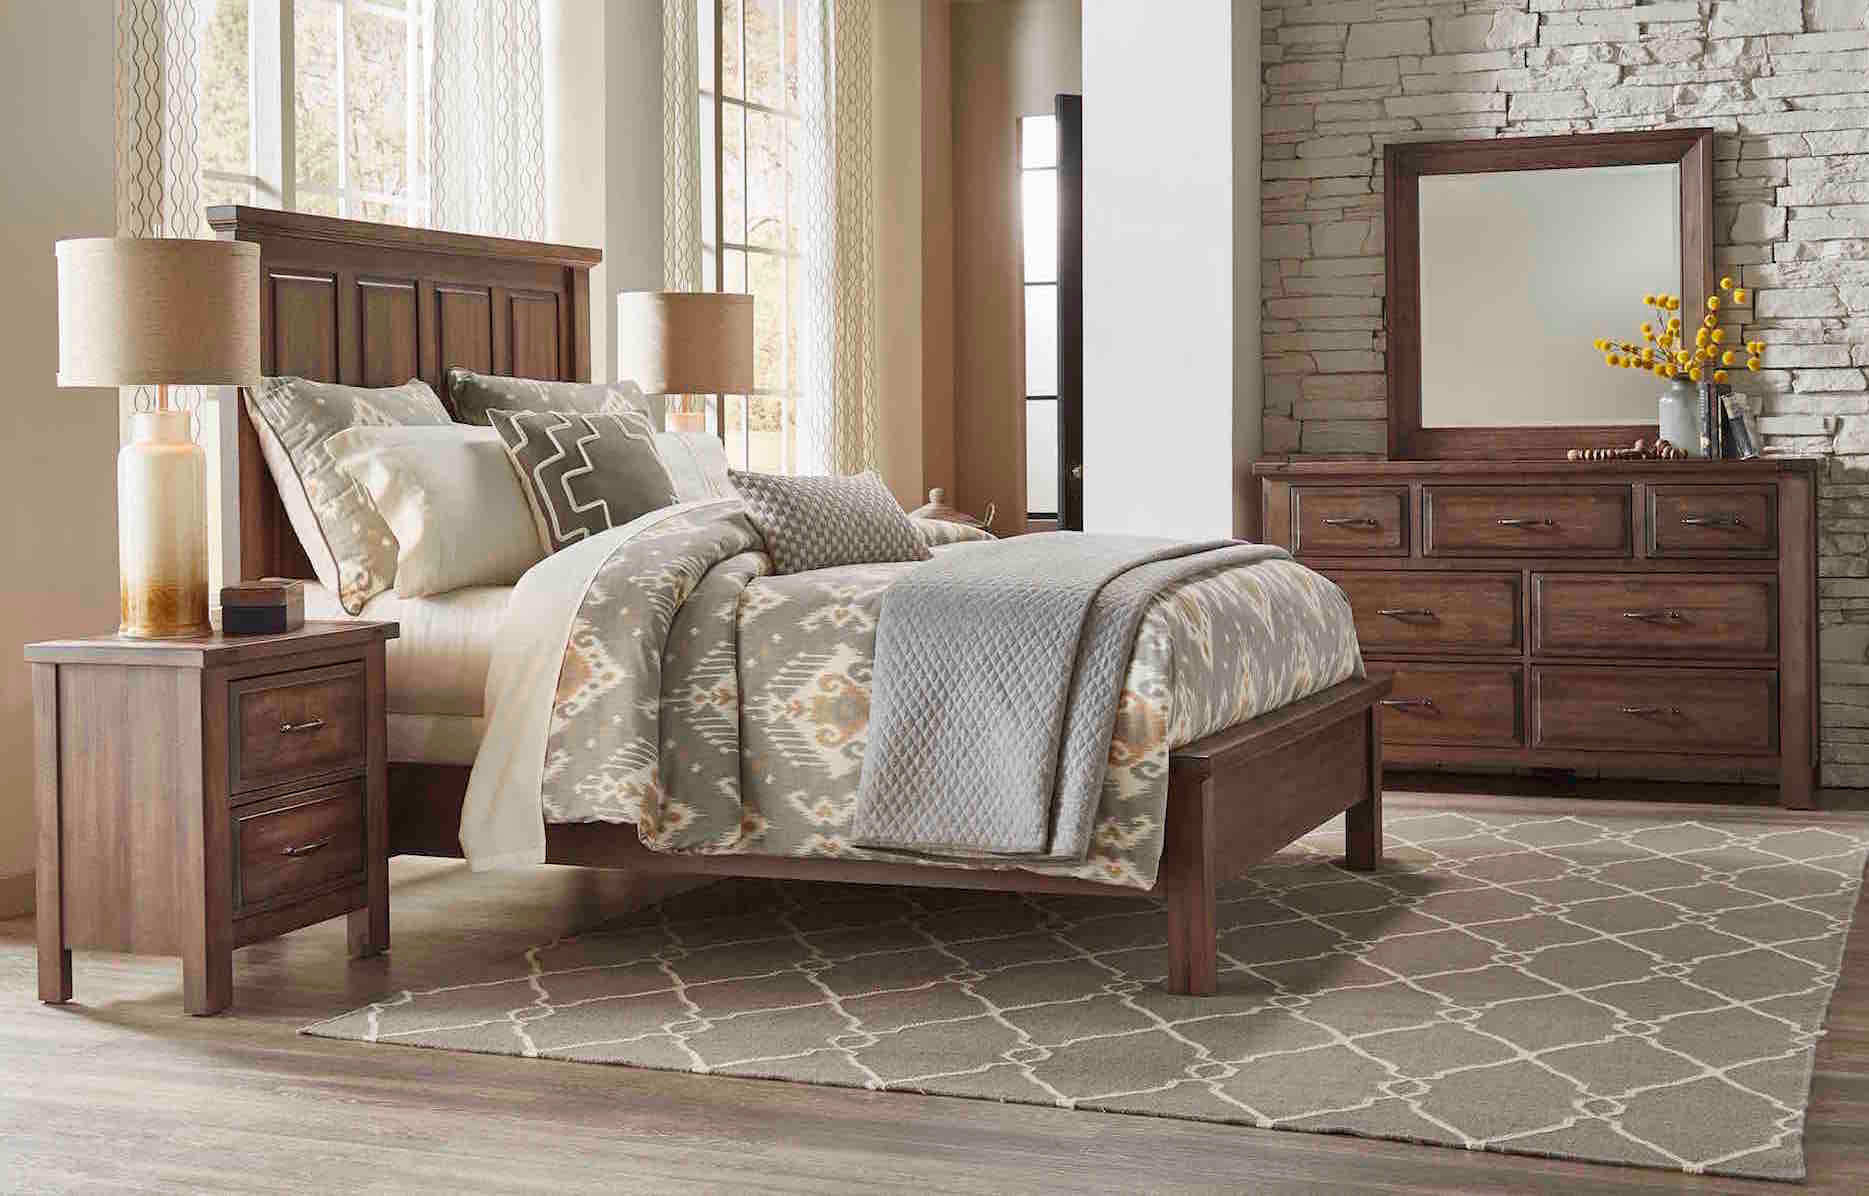 Mcallister 39 S Home Furnishings Family Friendly Since 1888 Mount Carmel South Carolina